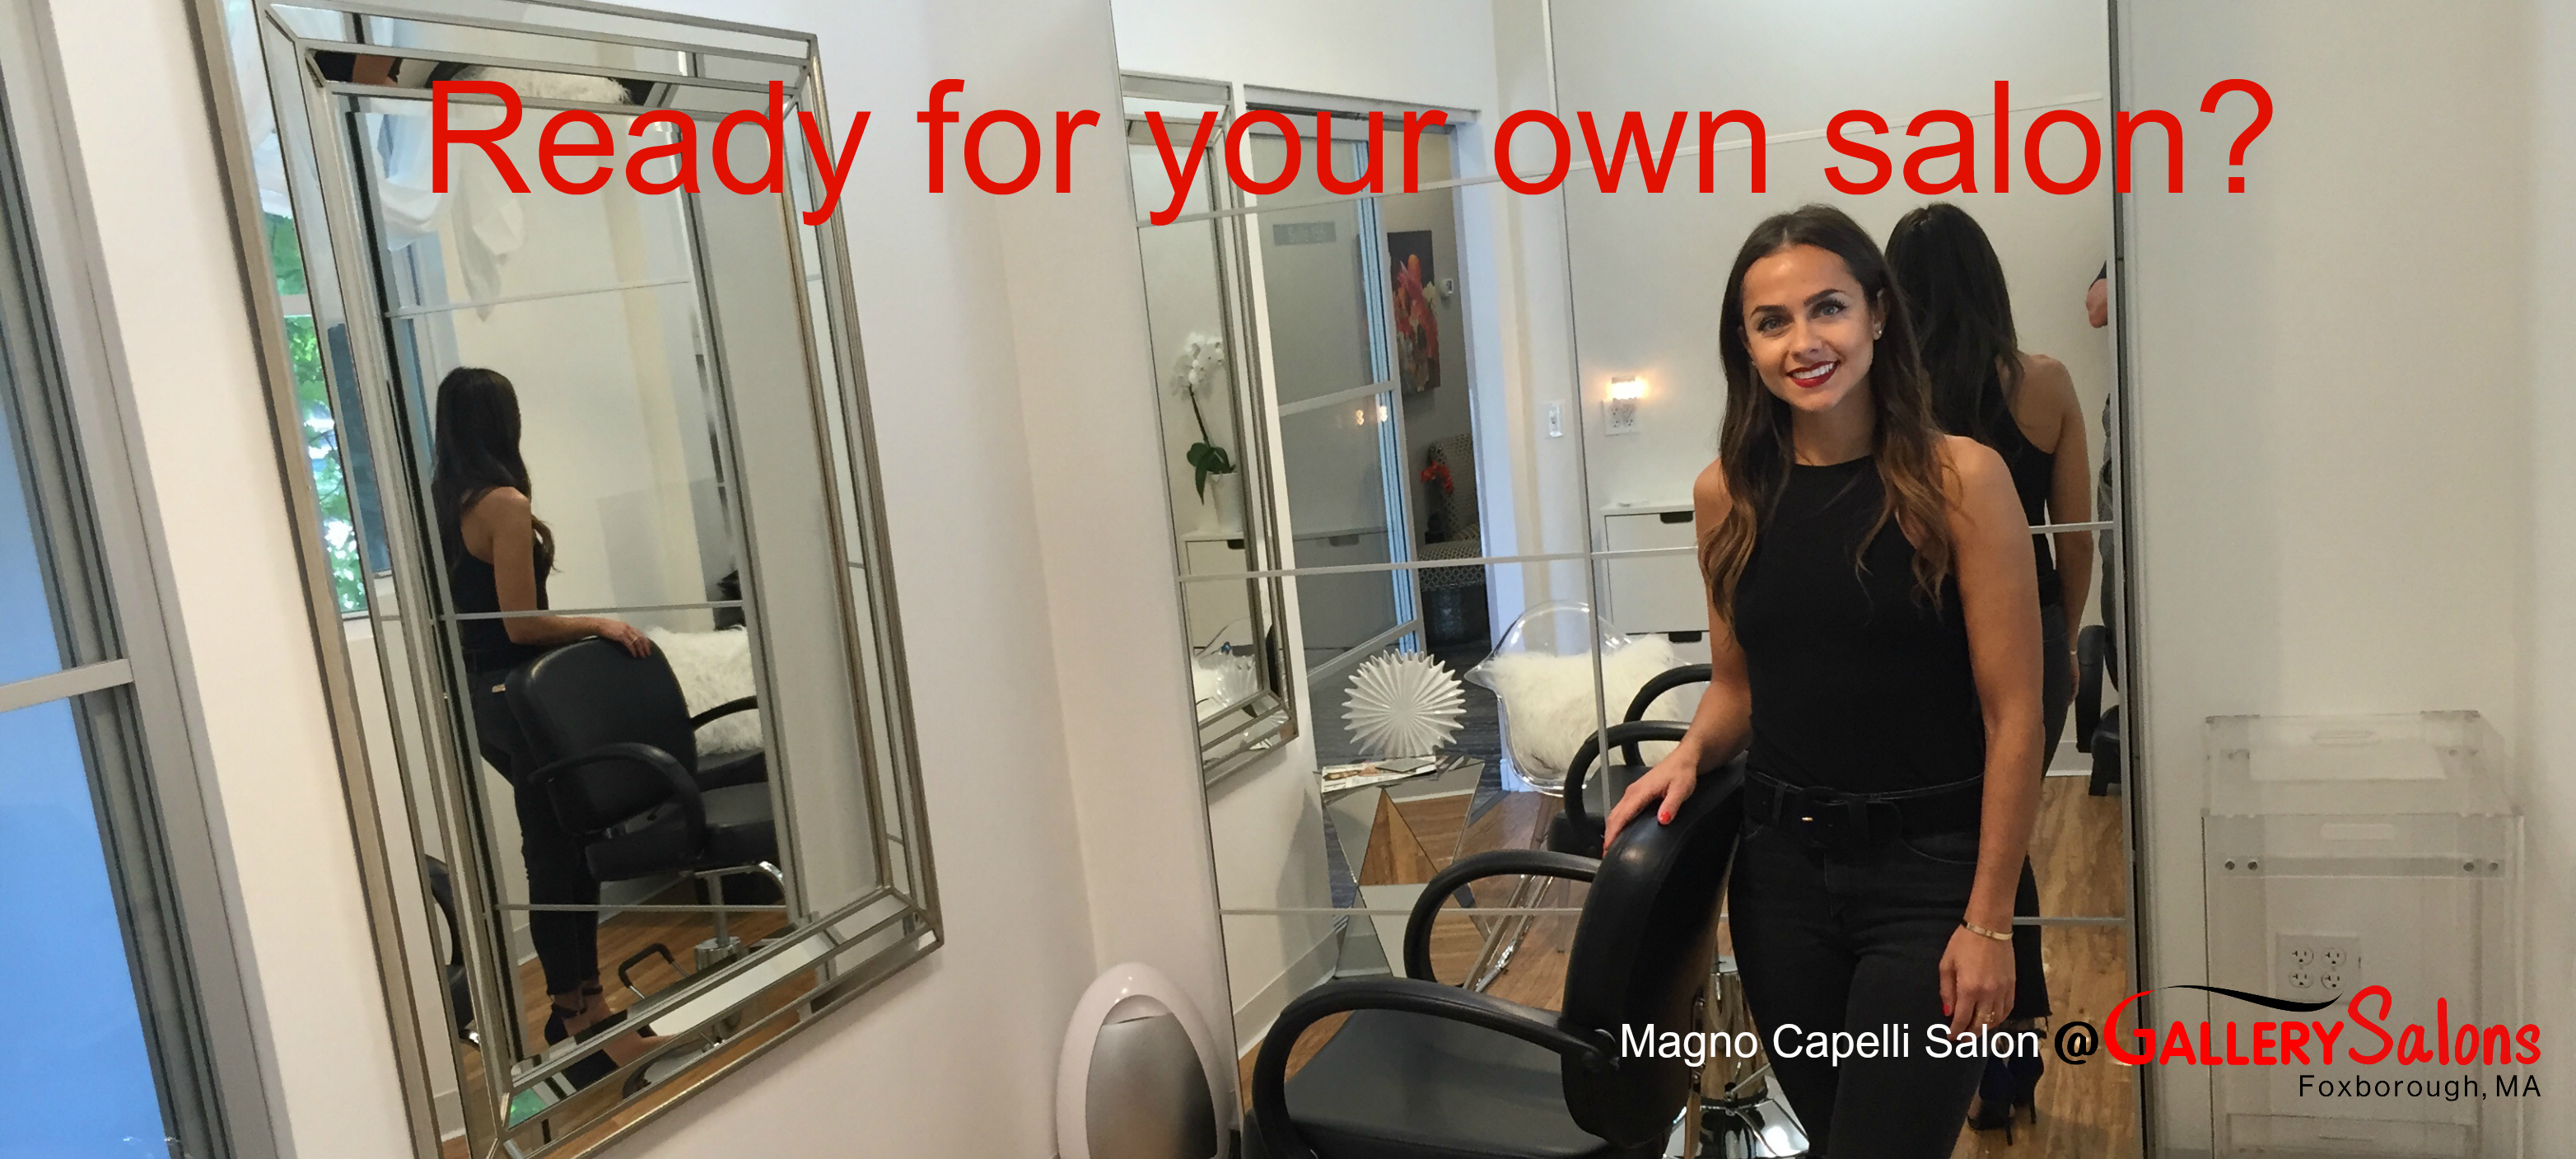 Gallery salons ready for your own salon for Design your own salon